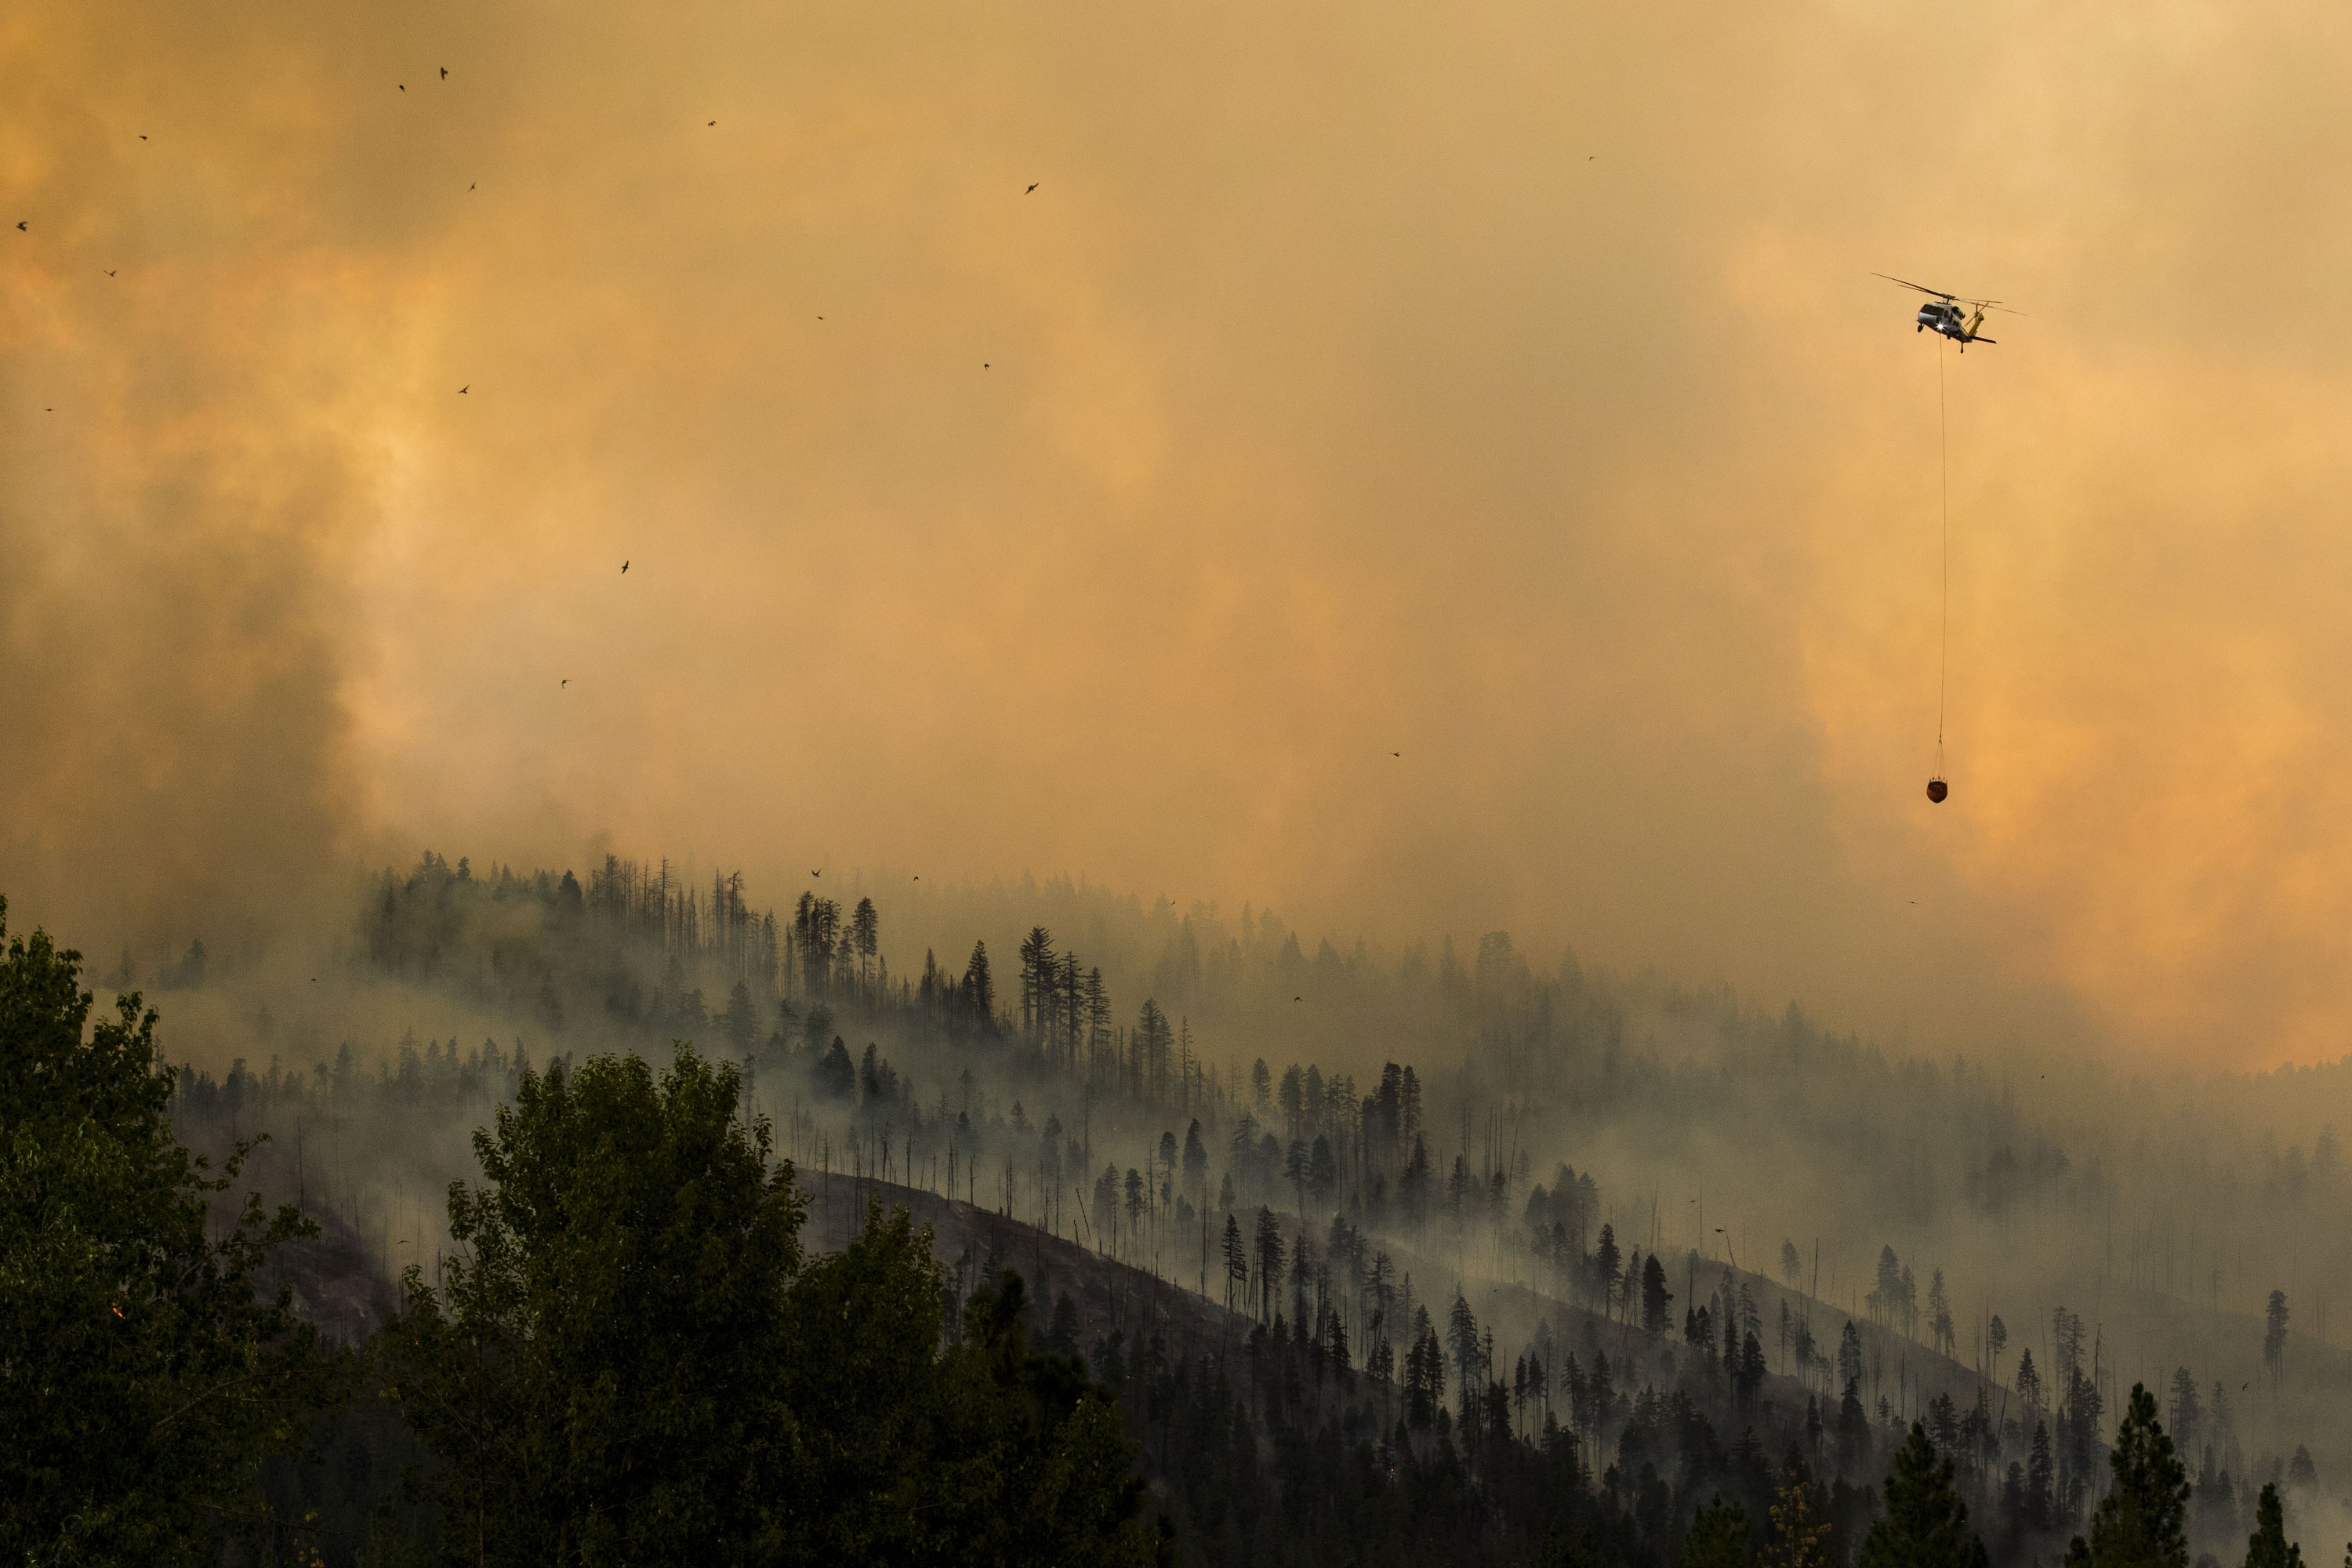 A helicopter flying through a smoky sky over a forest carries a pouch of water below it